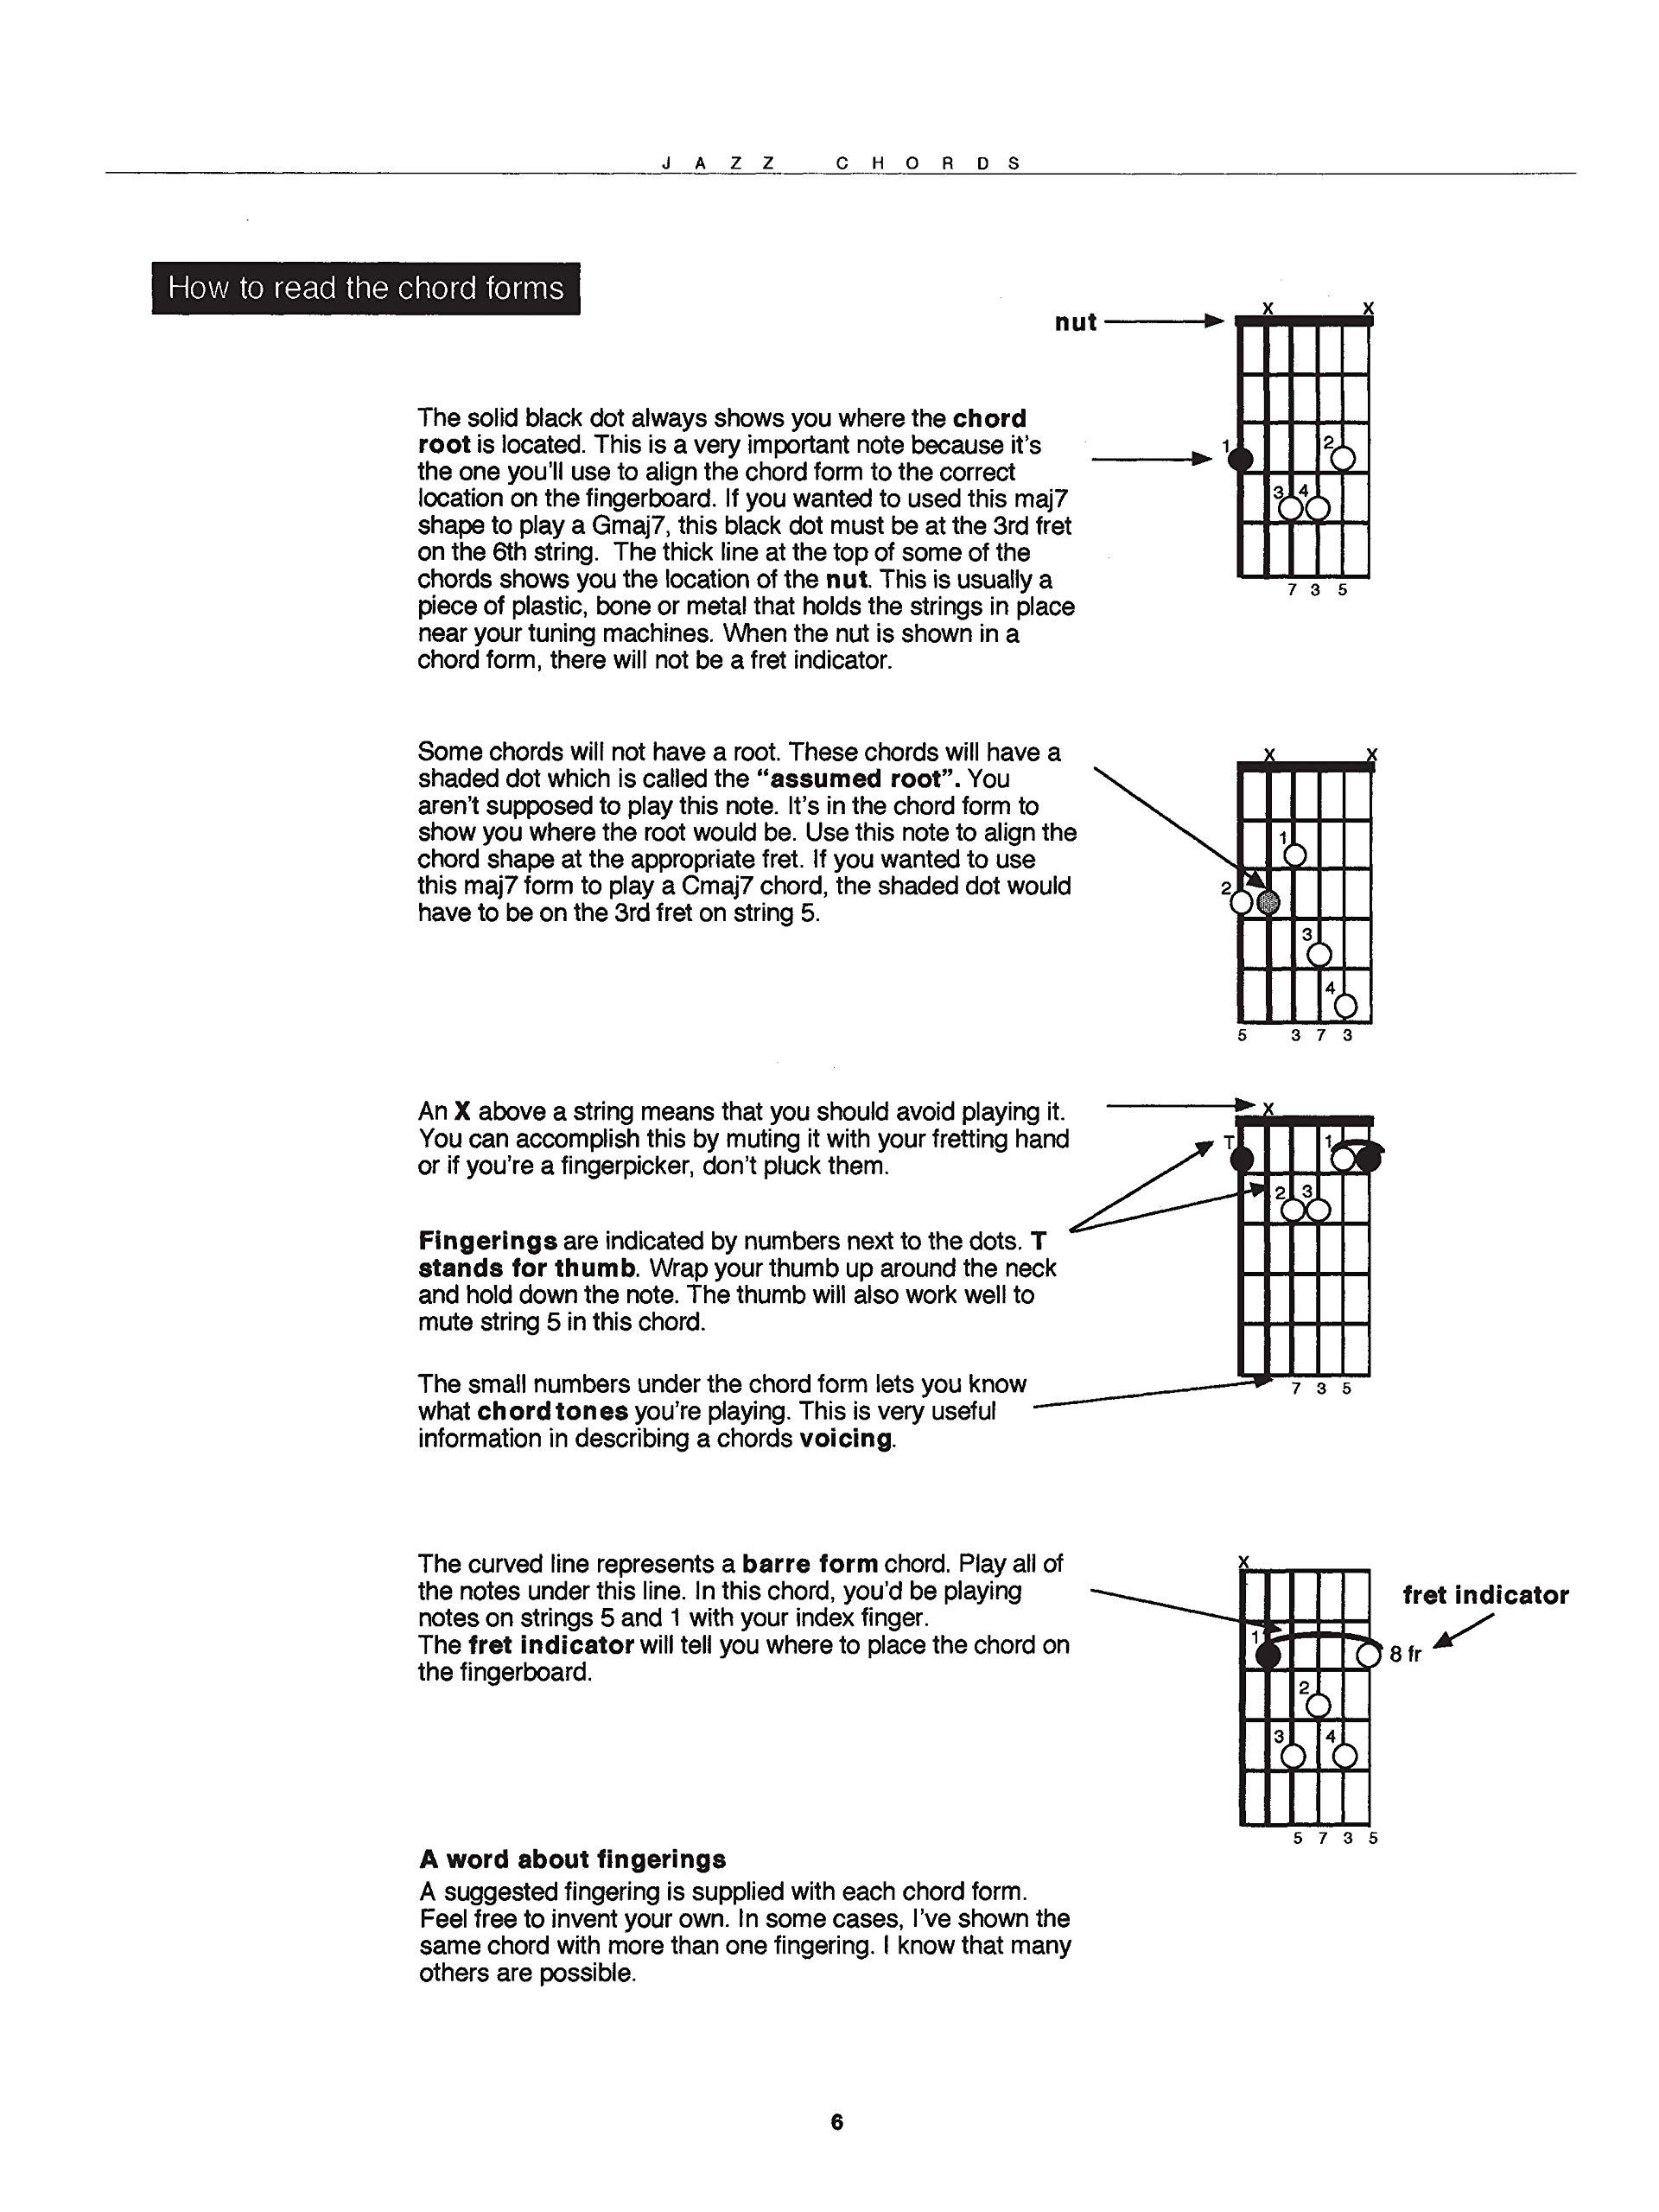 Ultimate Guitar Chords Jazz Chords The Ultimate Guitar Chord Book Series Latarski Don 9780769285252 Amazon Com Books